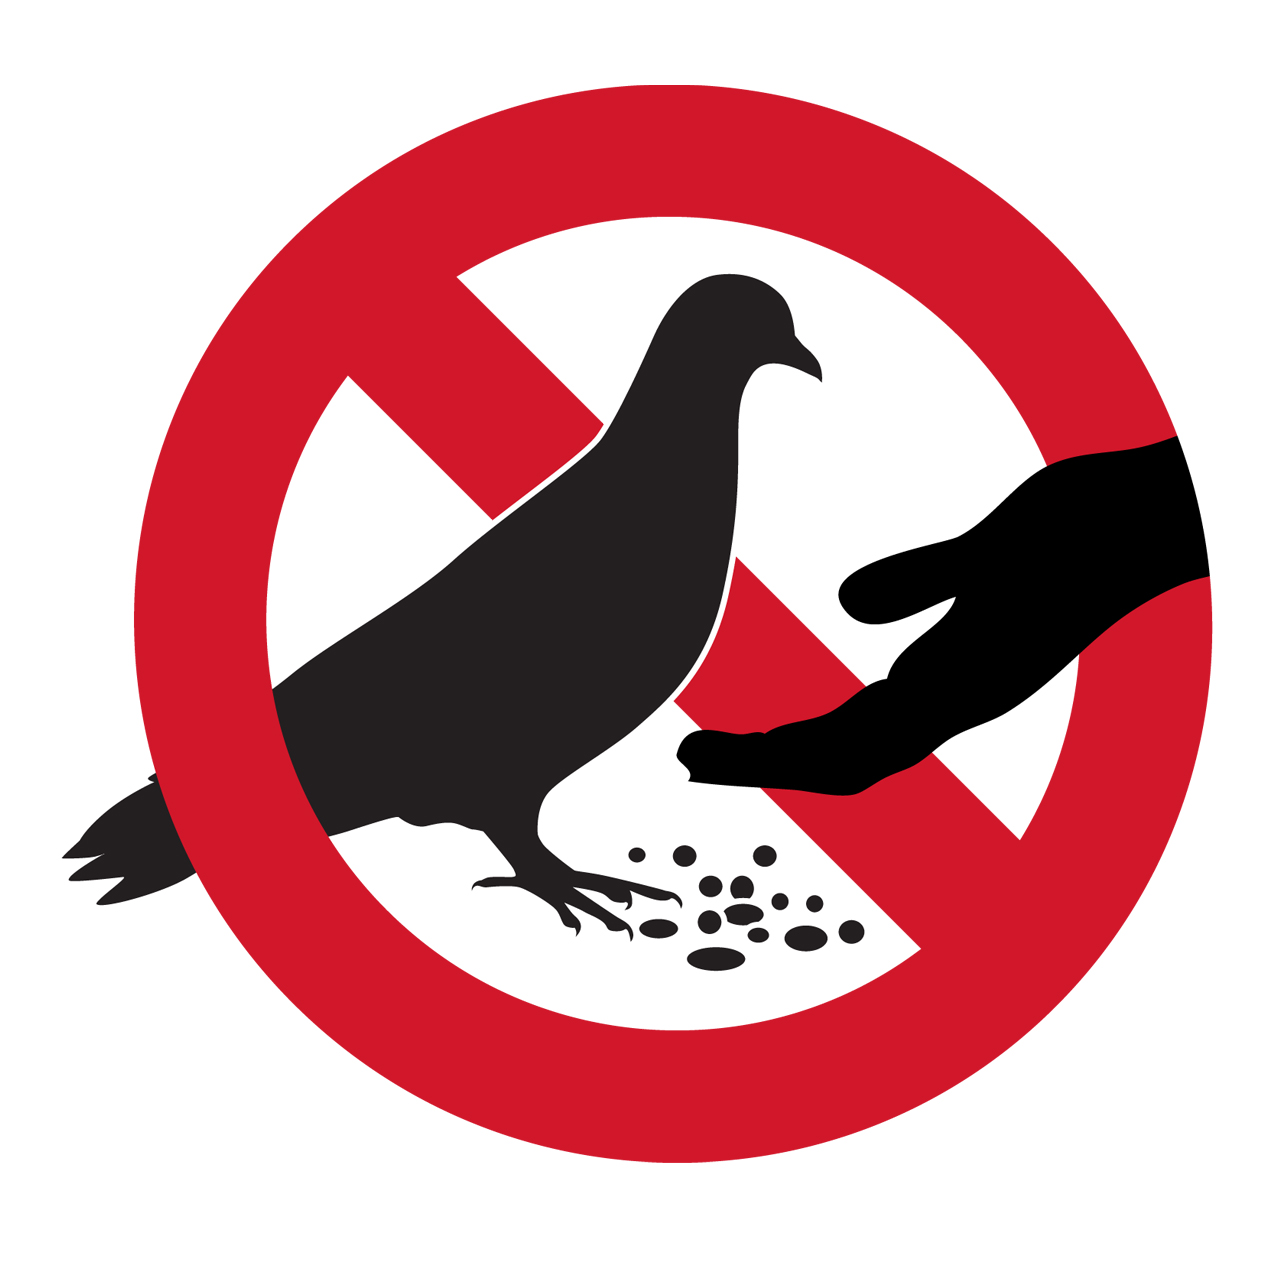 Pendle Council urges people not to feed the pigeons